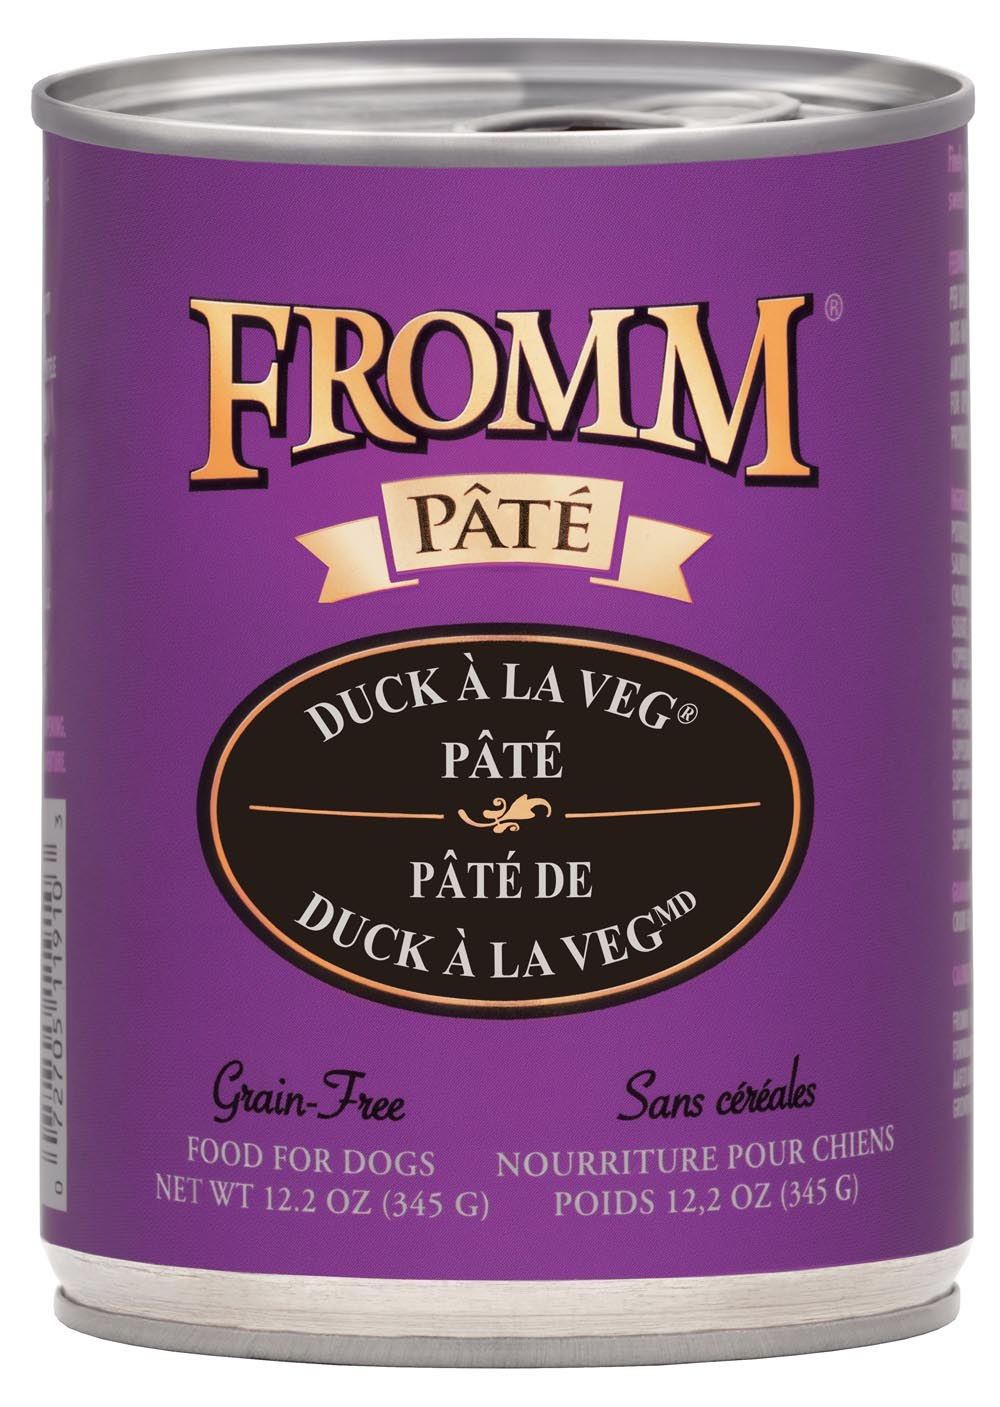 Fromm Pate Grain Free Duck A La Veg Pate Canned Dog Food